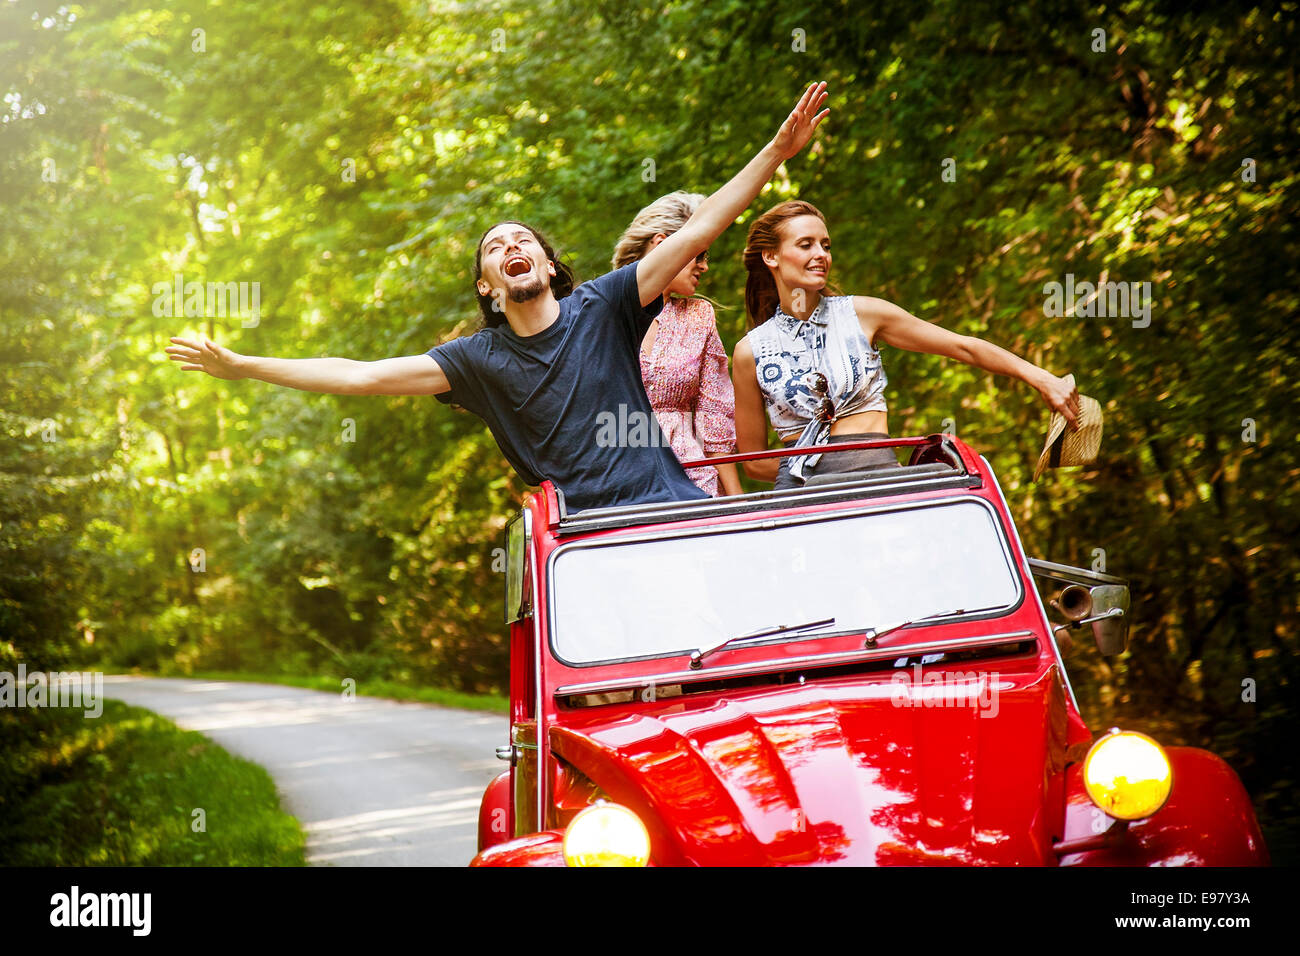 Young people in red vintage car fooling around - Stock Image